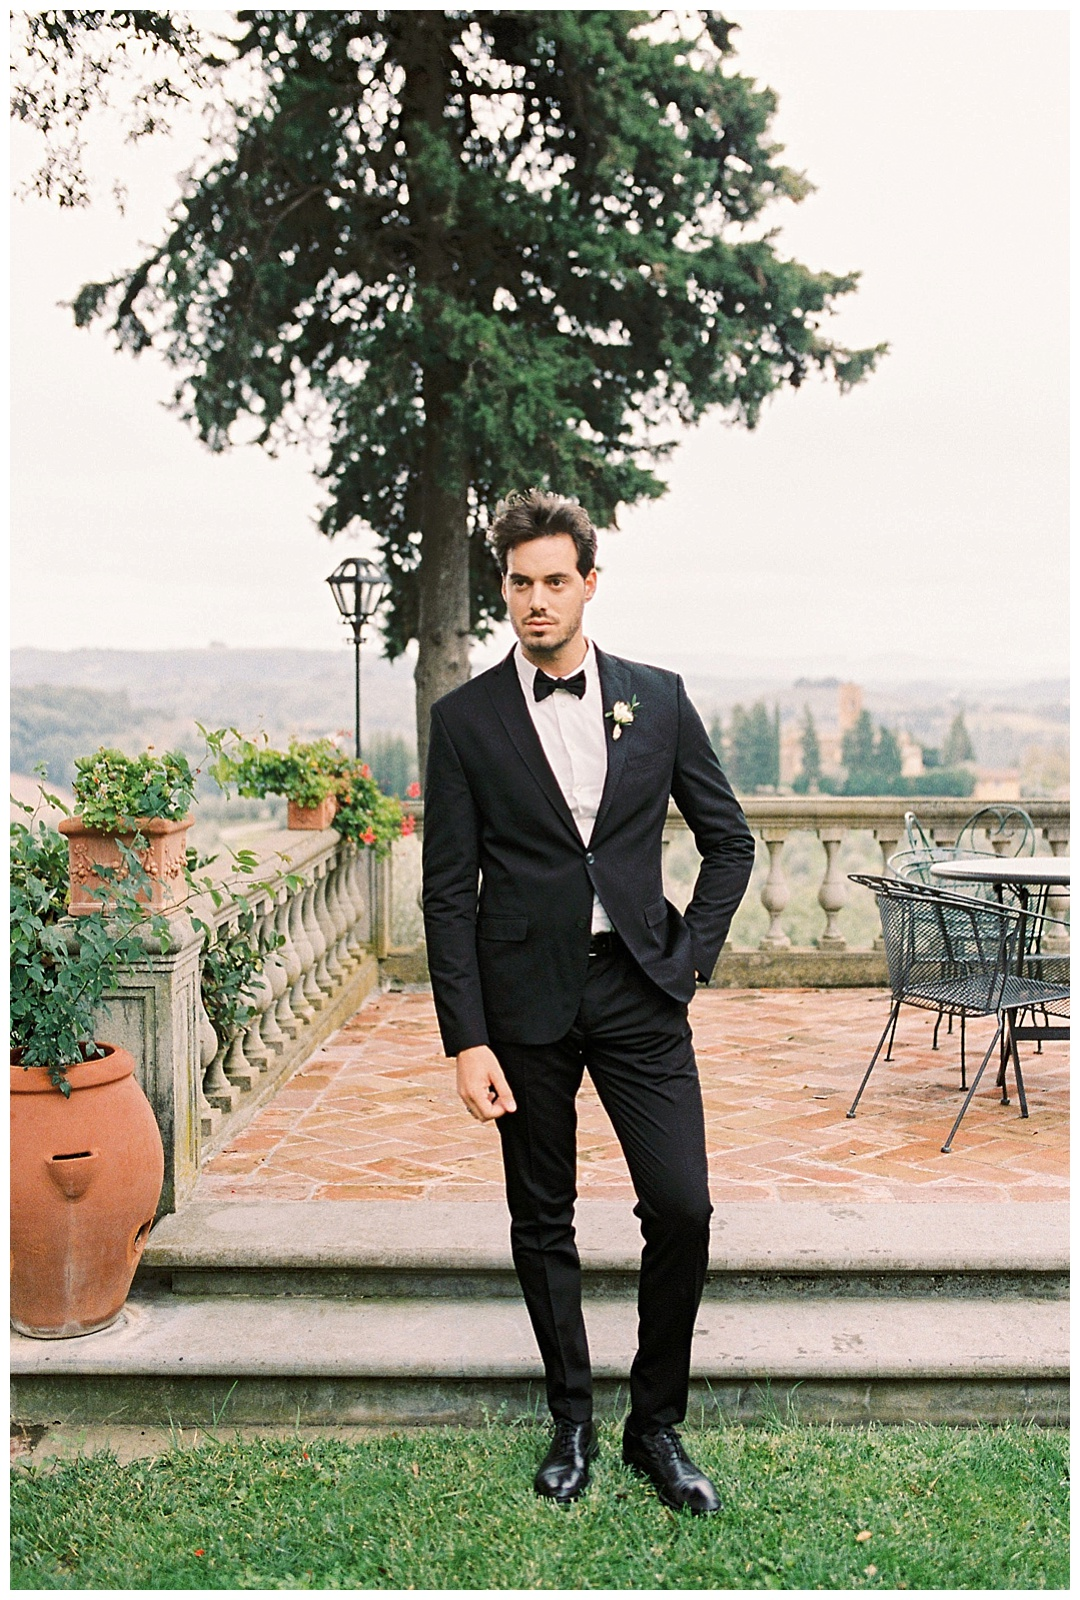 We_Can _Be_Heroes_alternative_wedding_photographer_Tuscany_wedding_film_0031